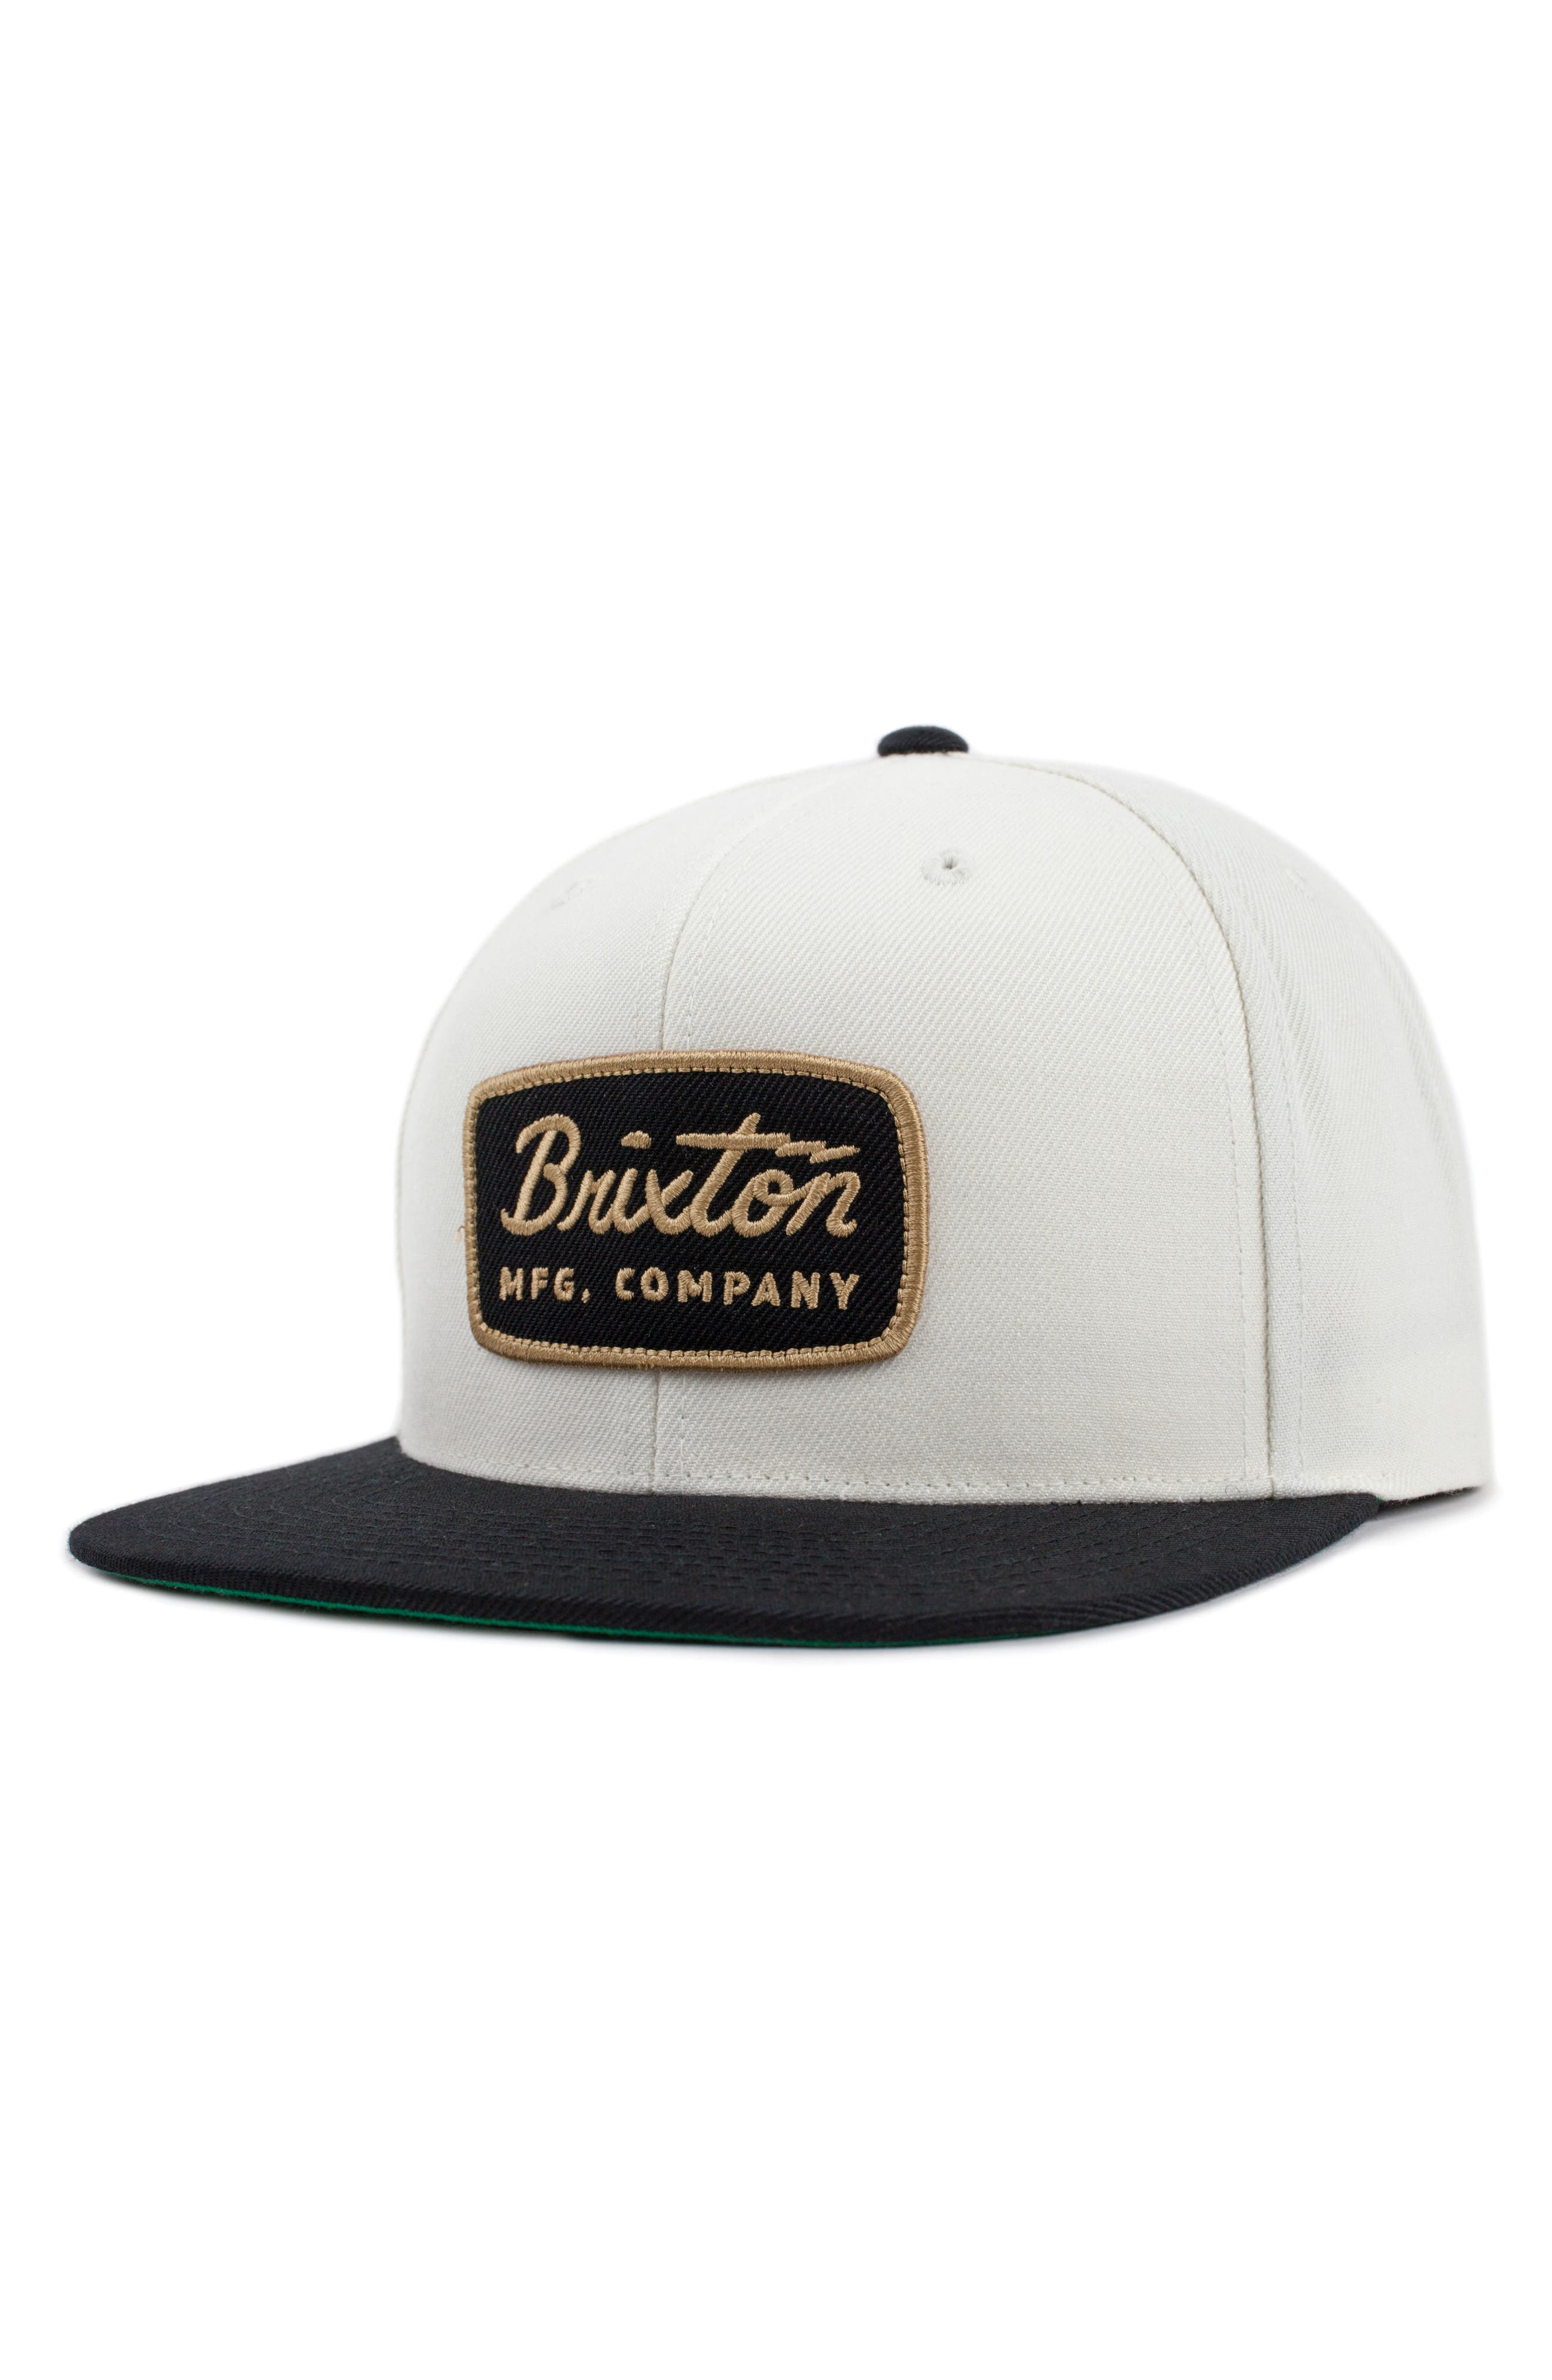 new styles dc884 6902d ... promo code for mens brixton hats hats for men nordstrom 27629 37019